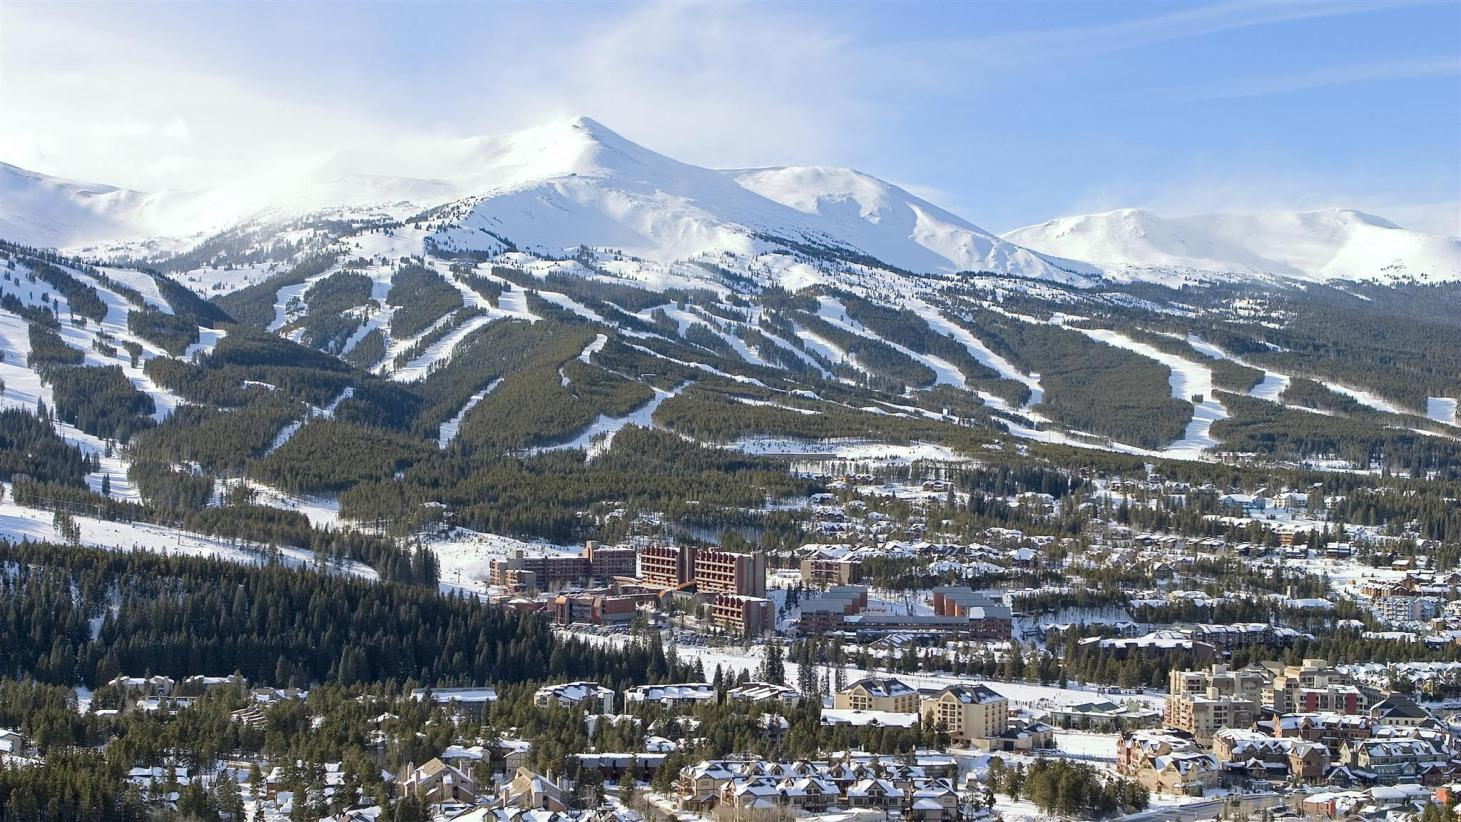 30 Best Breckenridge Co Hotels Free Cancellation 2021 Price Lists Reviews Of The Best Hotels In Breckenridge Co United States